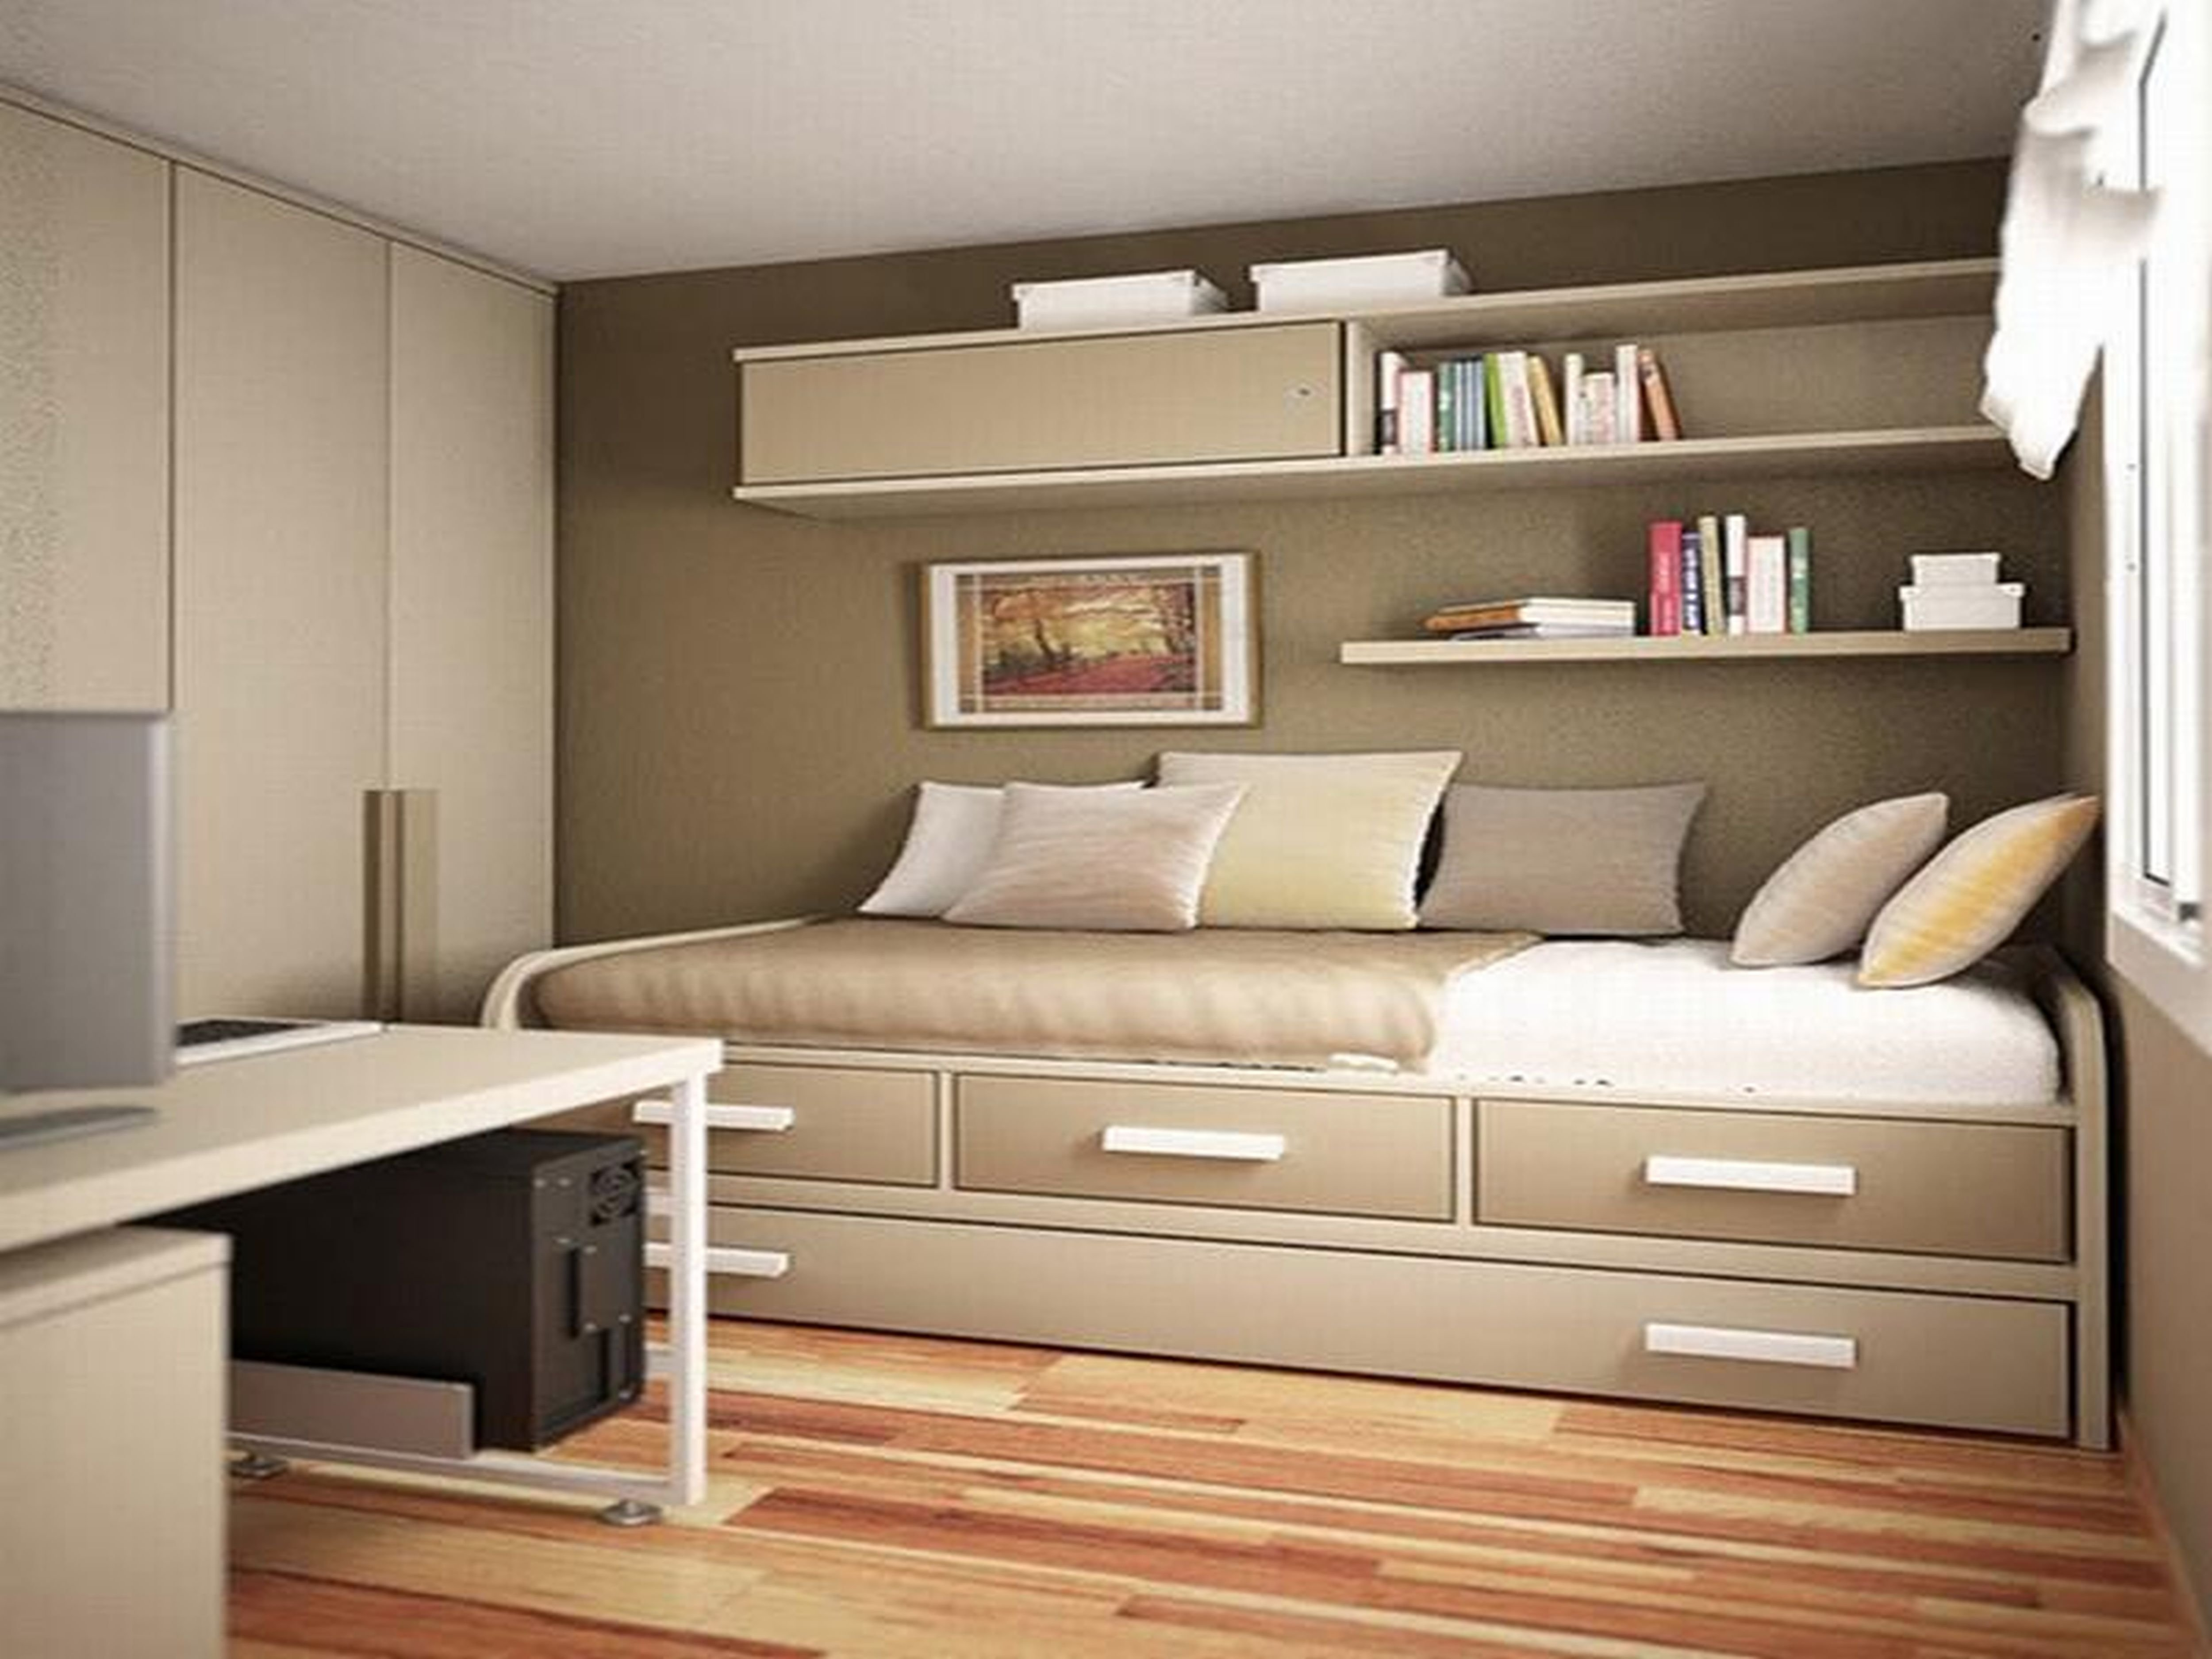 Best Room Wall Decoration Ideas Organize Small Bedroom Ideas With Pictures